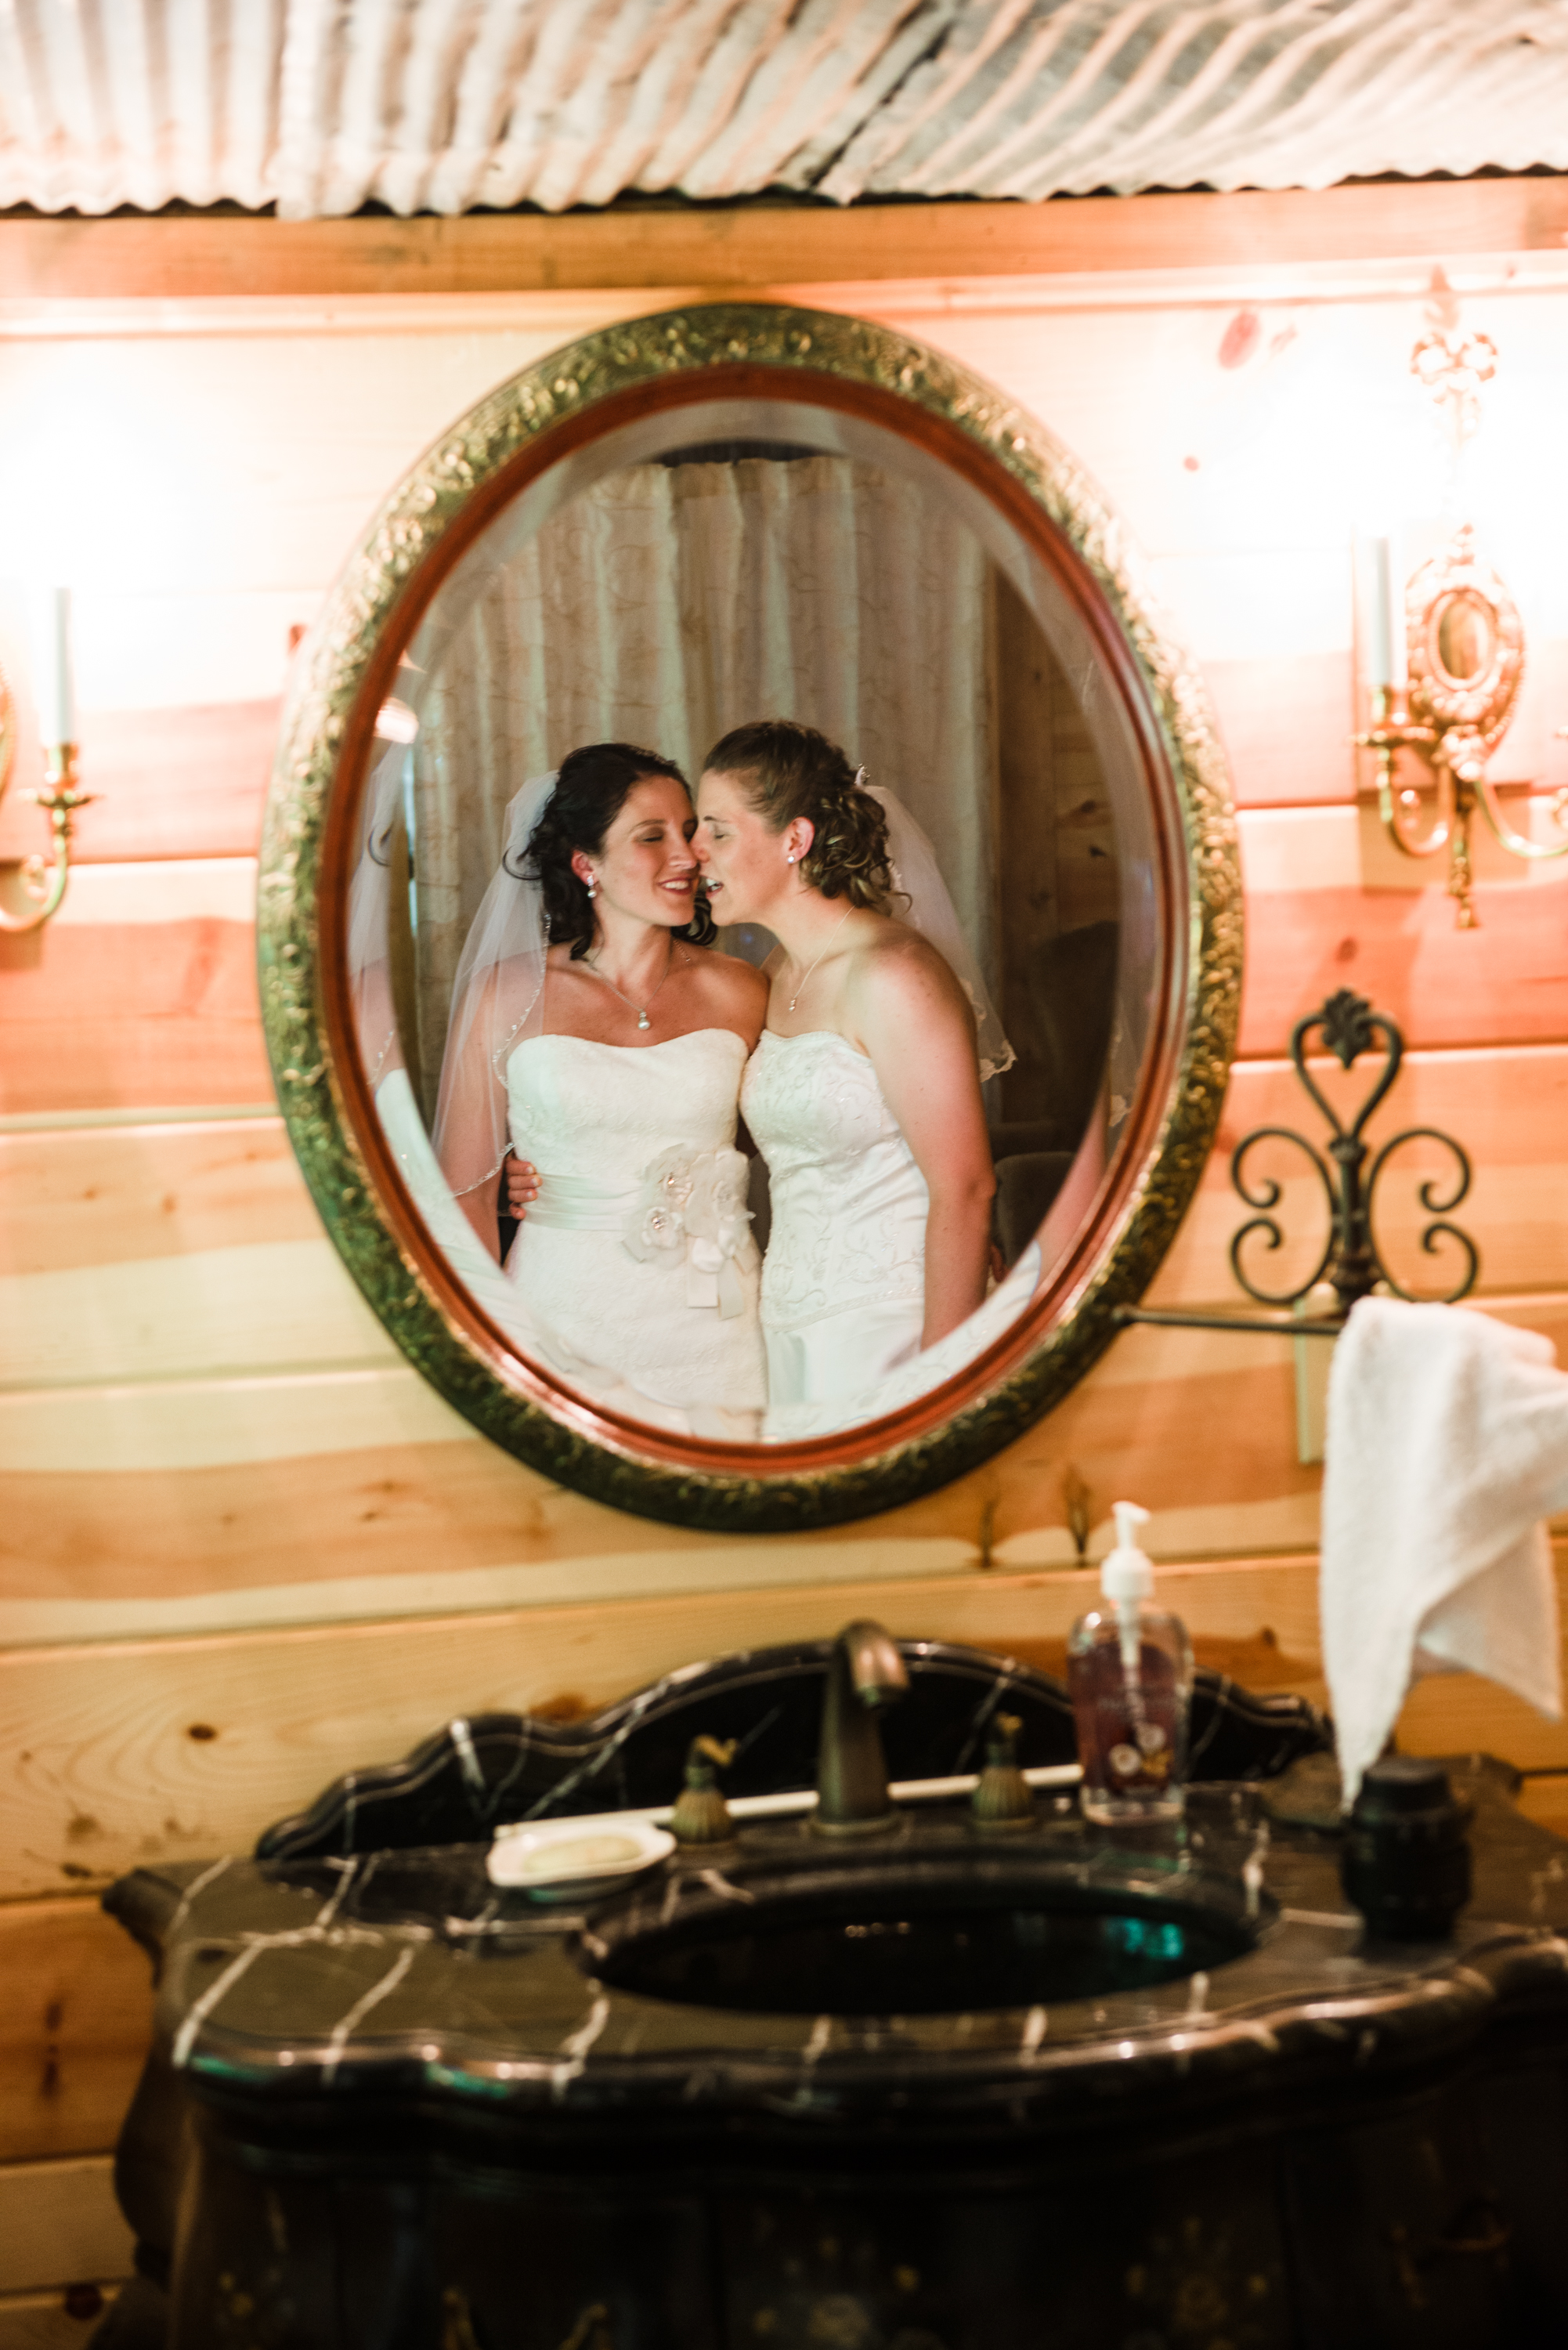 Minnesota LGBT Wedding Photography - Megan and Trista - RKH Images - Portraits (190 of 490).jpg